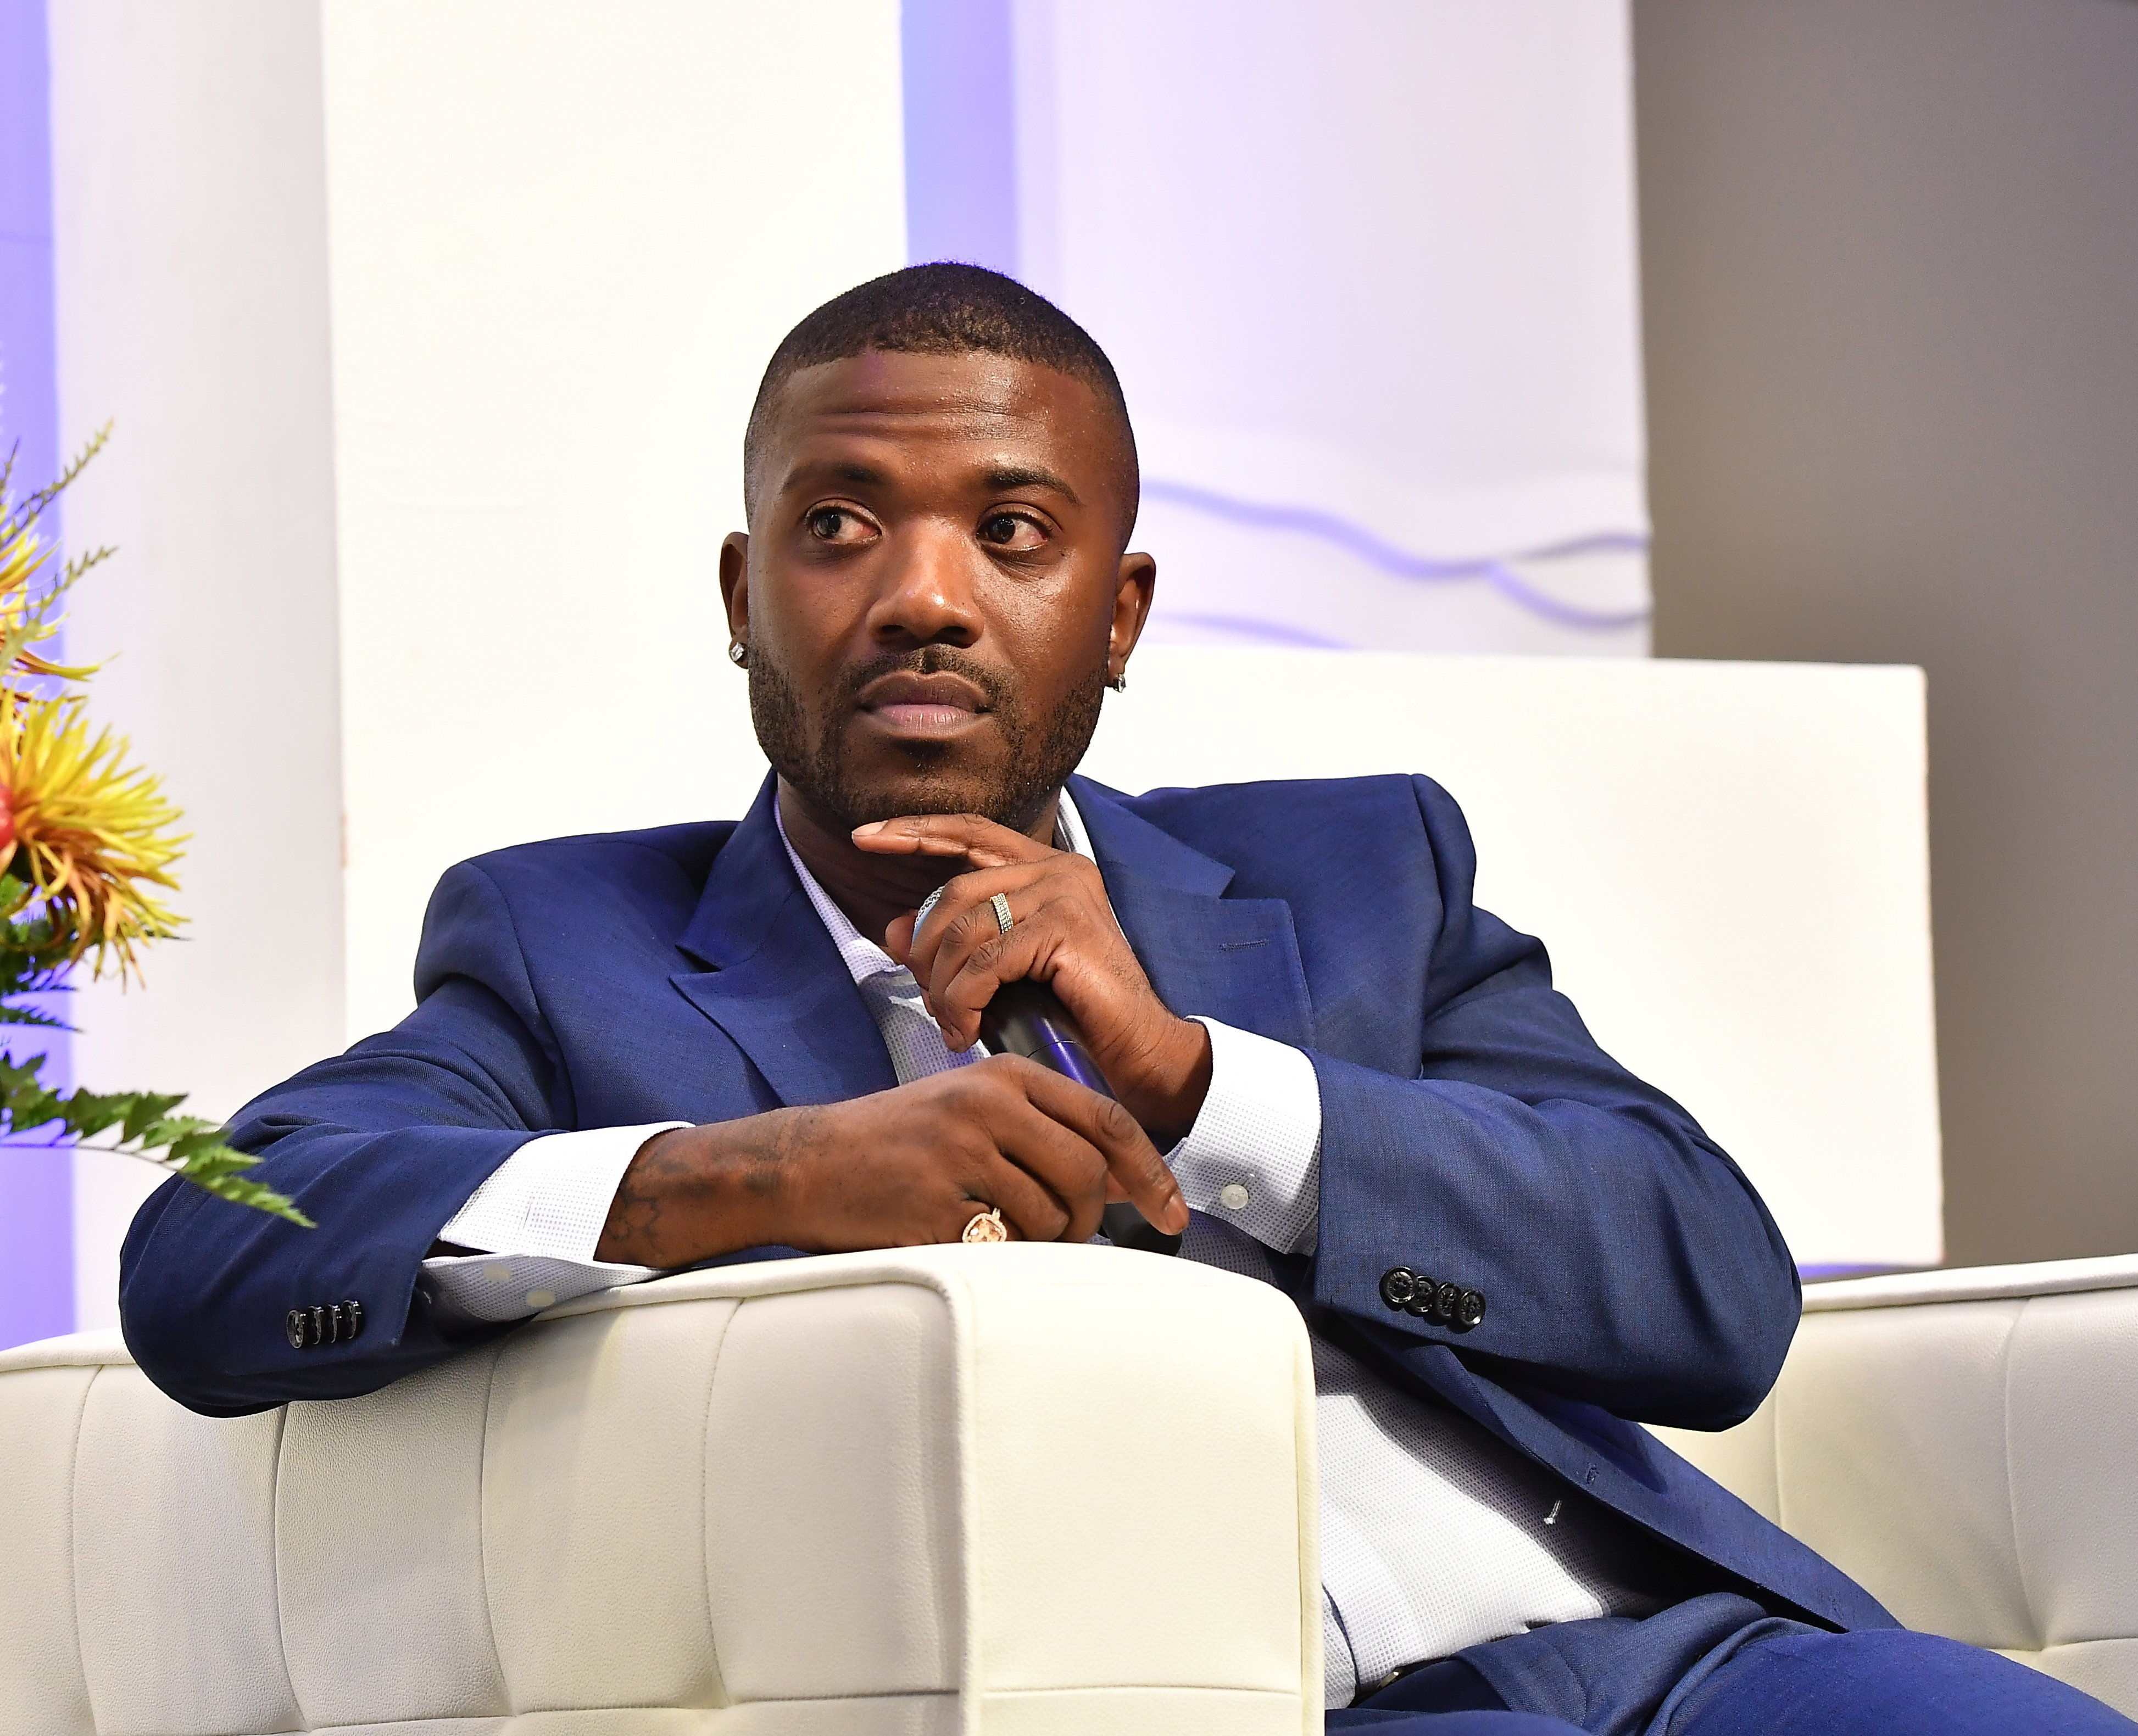 Ray J at the RollingOut 2018 Ride Conference at Loudermilk Conference Center on September 28, 2018 in Atlanta, Georgia.| Source: Getty Images